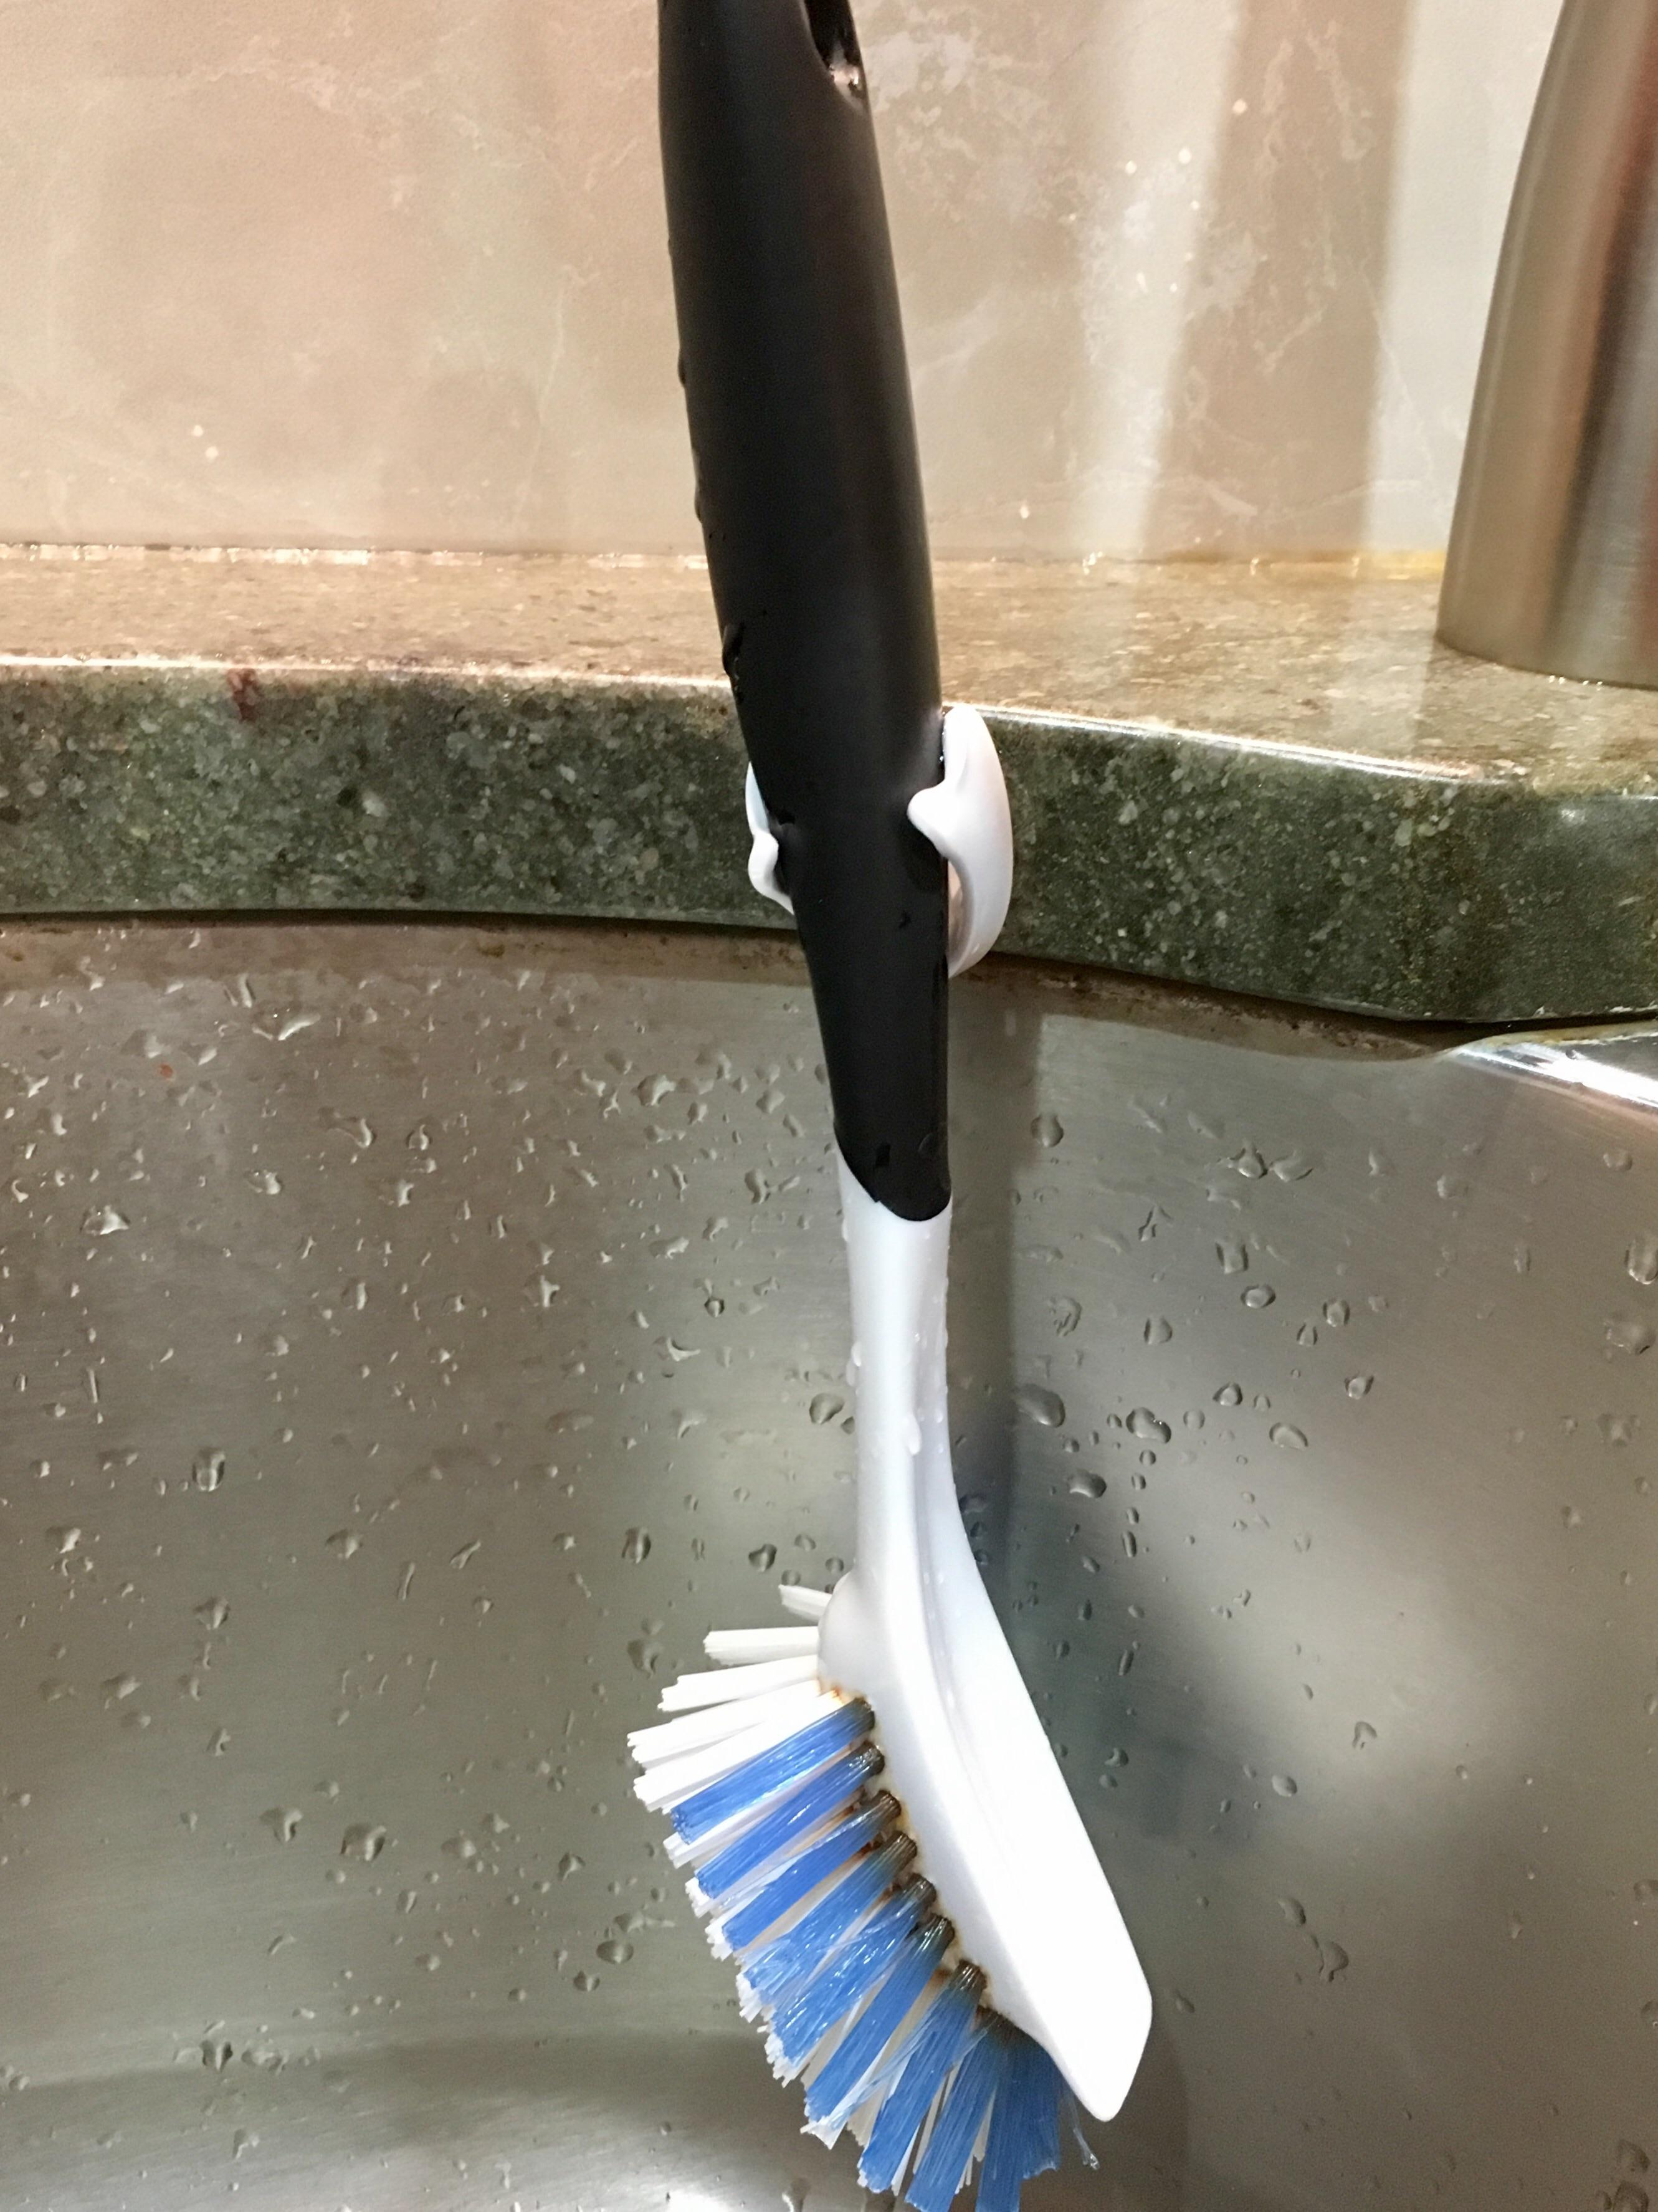 use a razor holder with suction cup to